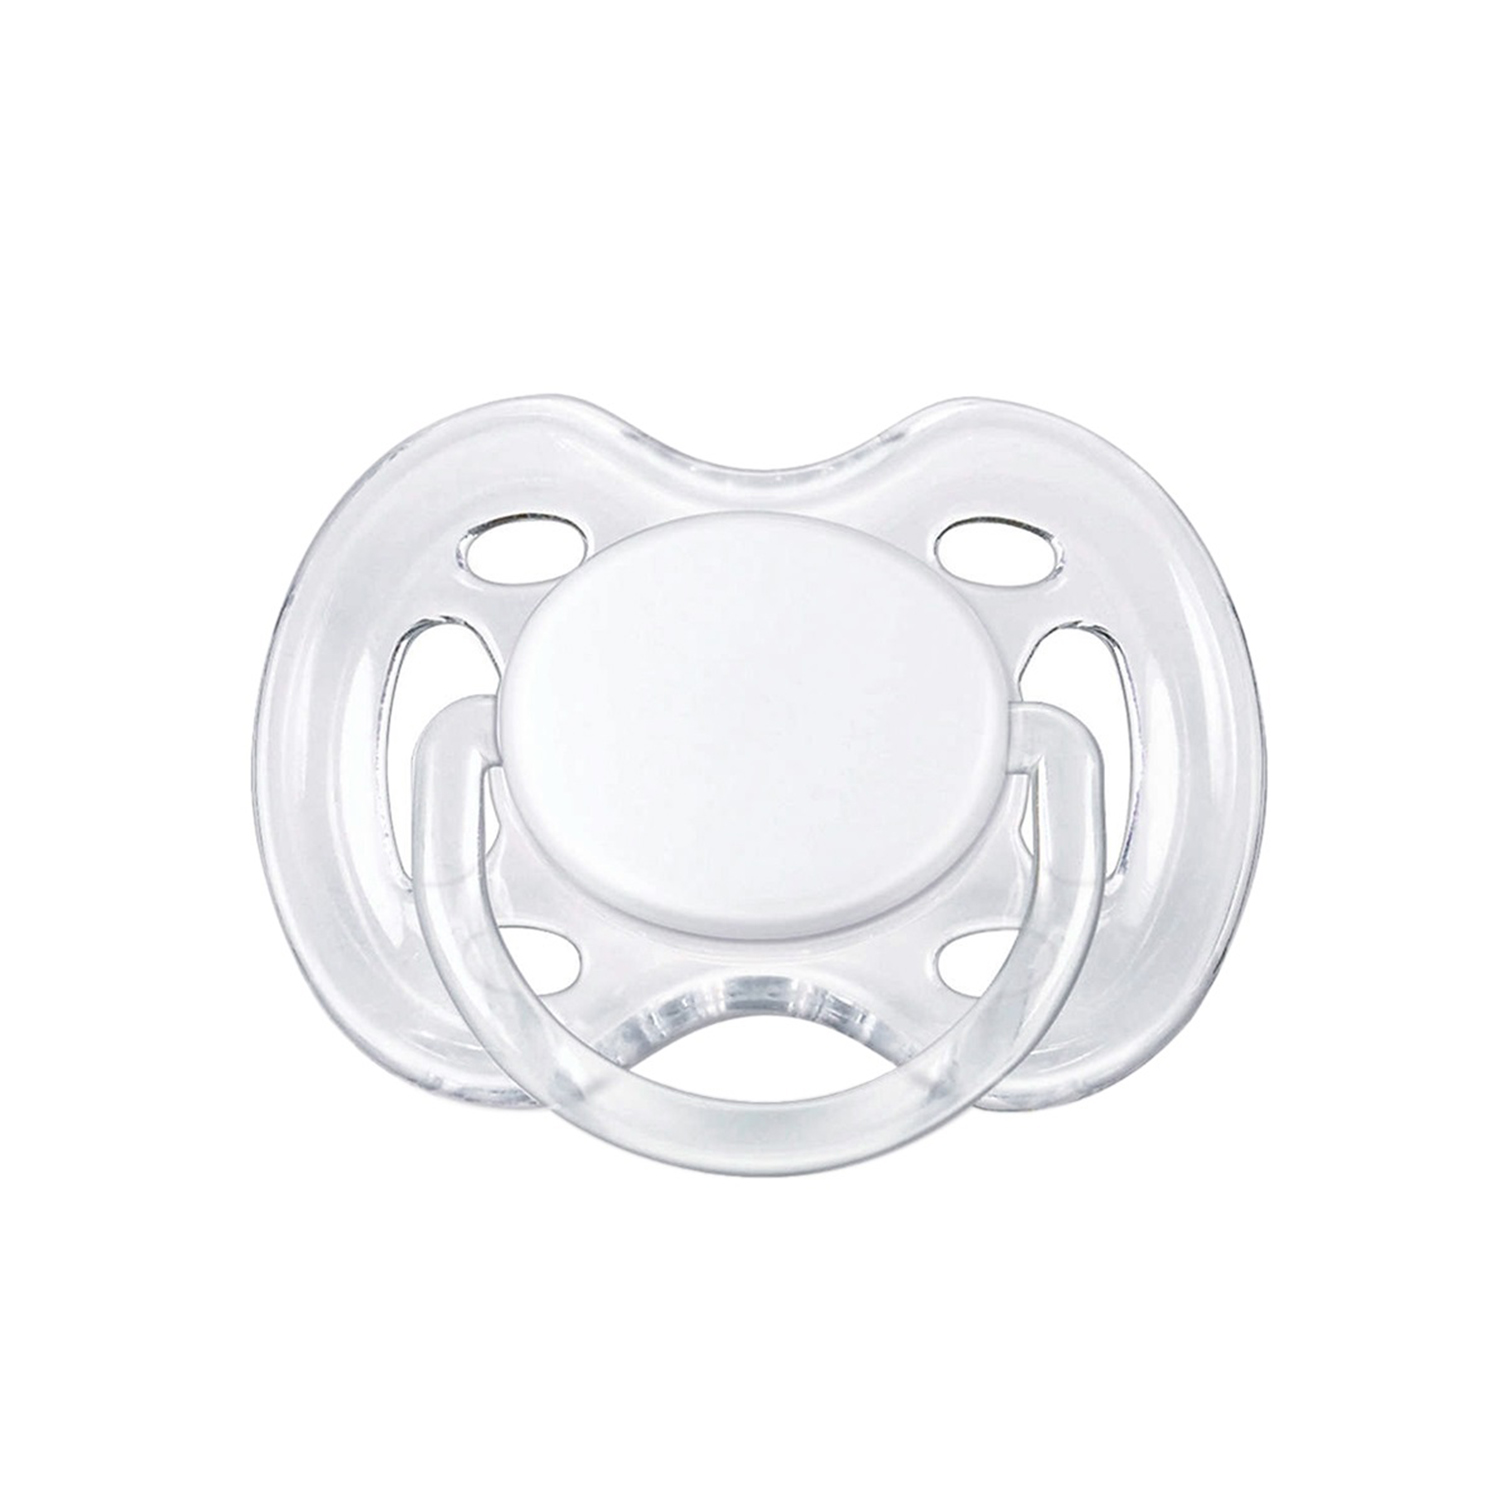 Avent Scf178/13 Soother 0 - 6 Months